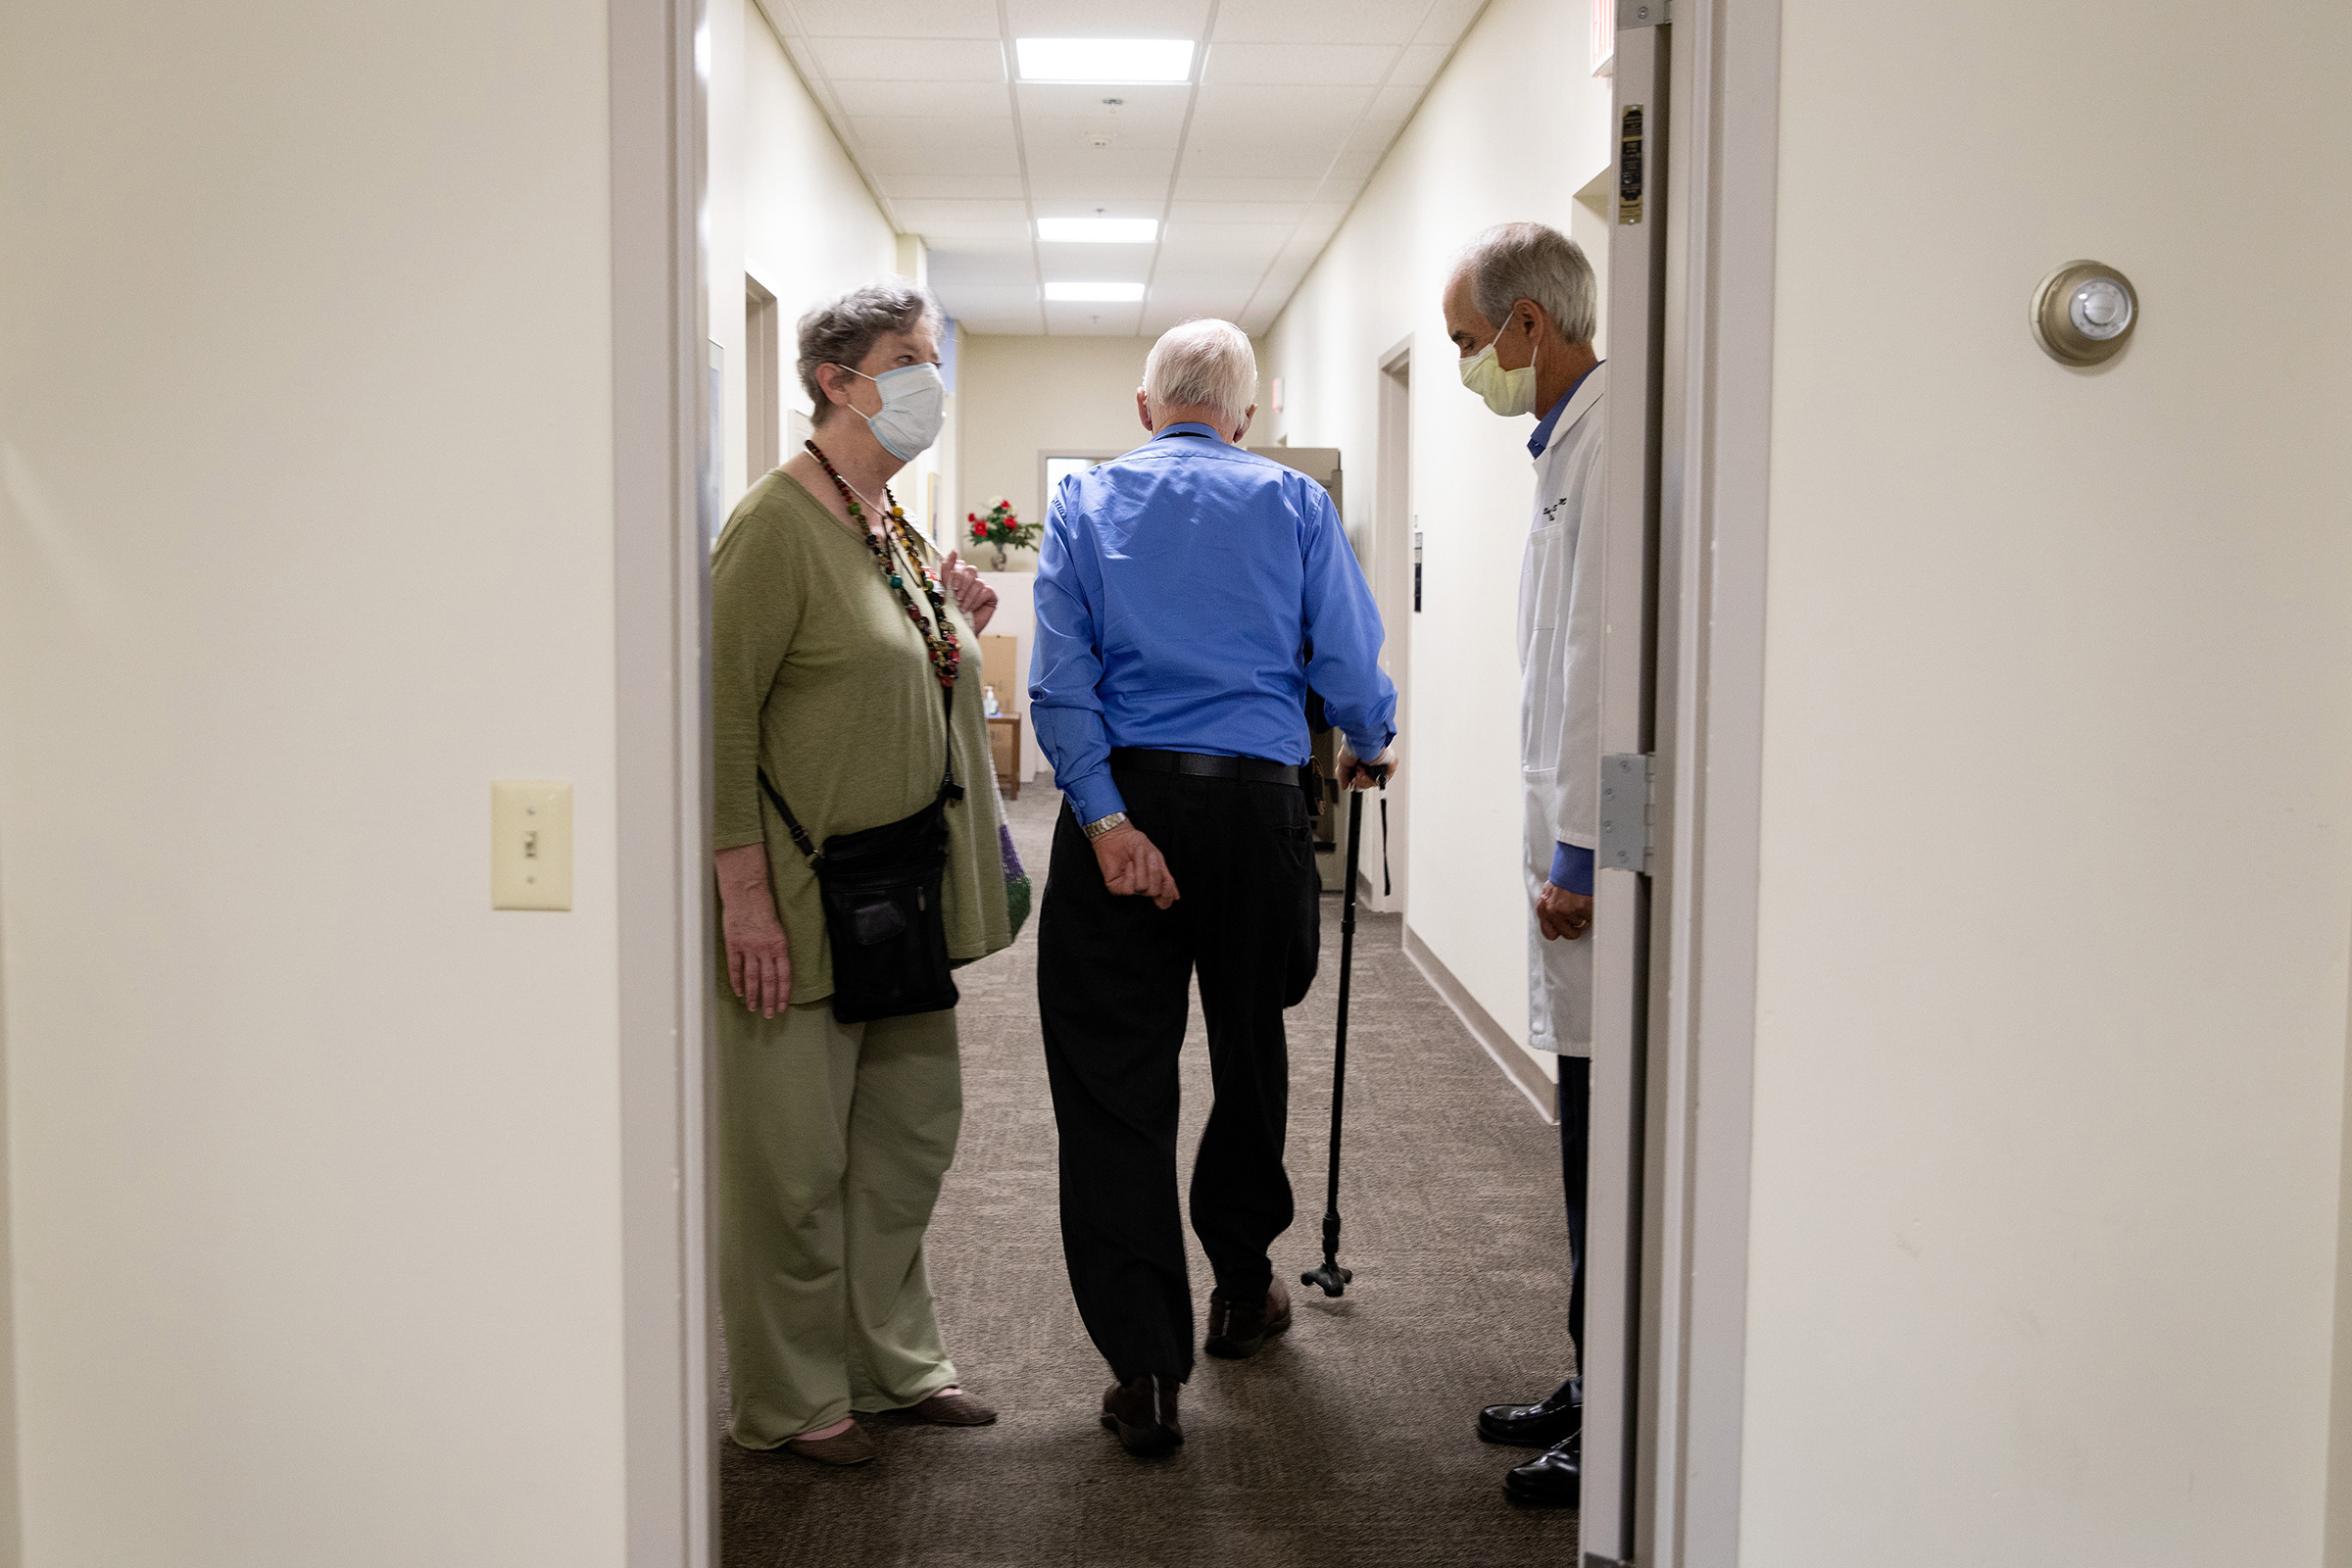 Henry Magendantz, center, a participant in the clinical trial of the experimental Alzheimer's drug, aducanumab, with his wife, Kathy Jellison, and Dr. Stephen Salloway, leaving the hospital after receiving an infusion in Providence, R.I., on May 27, 2021.